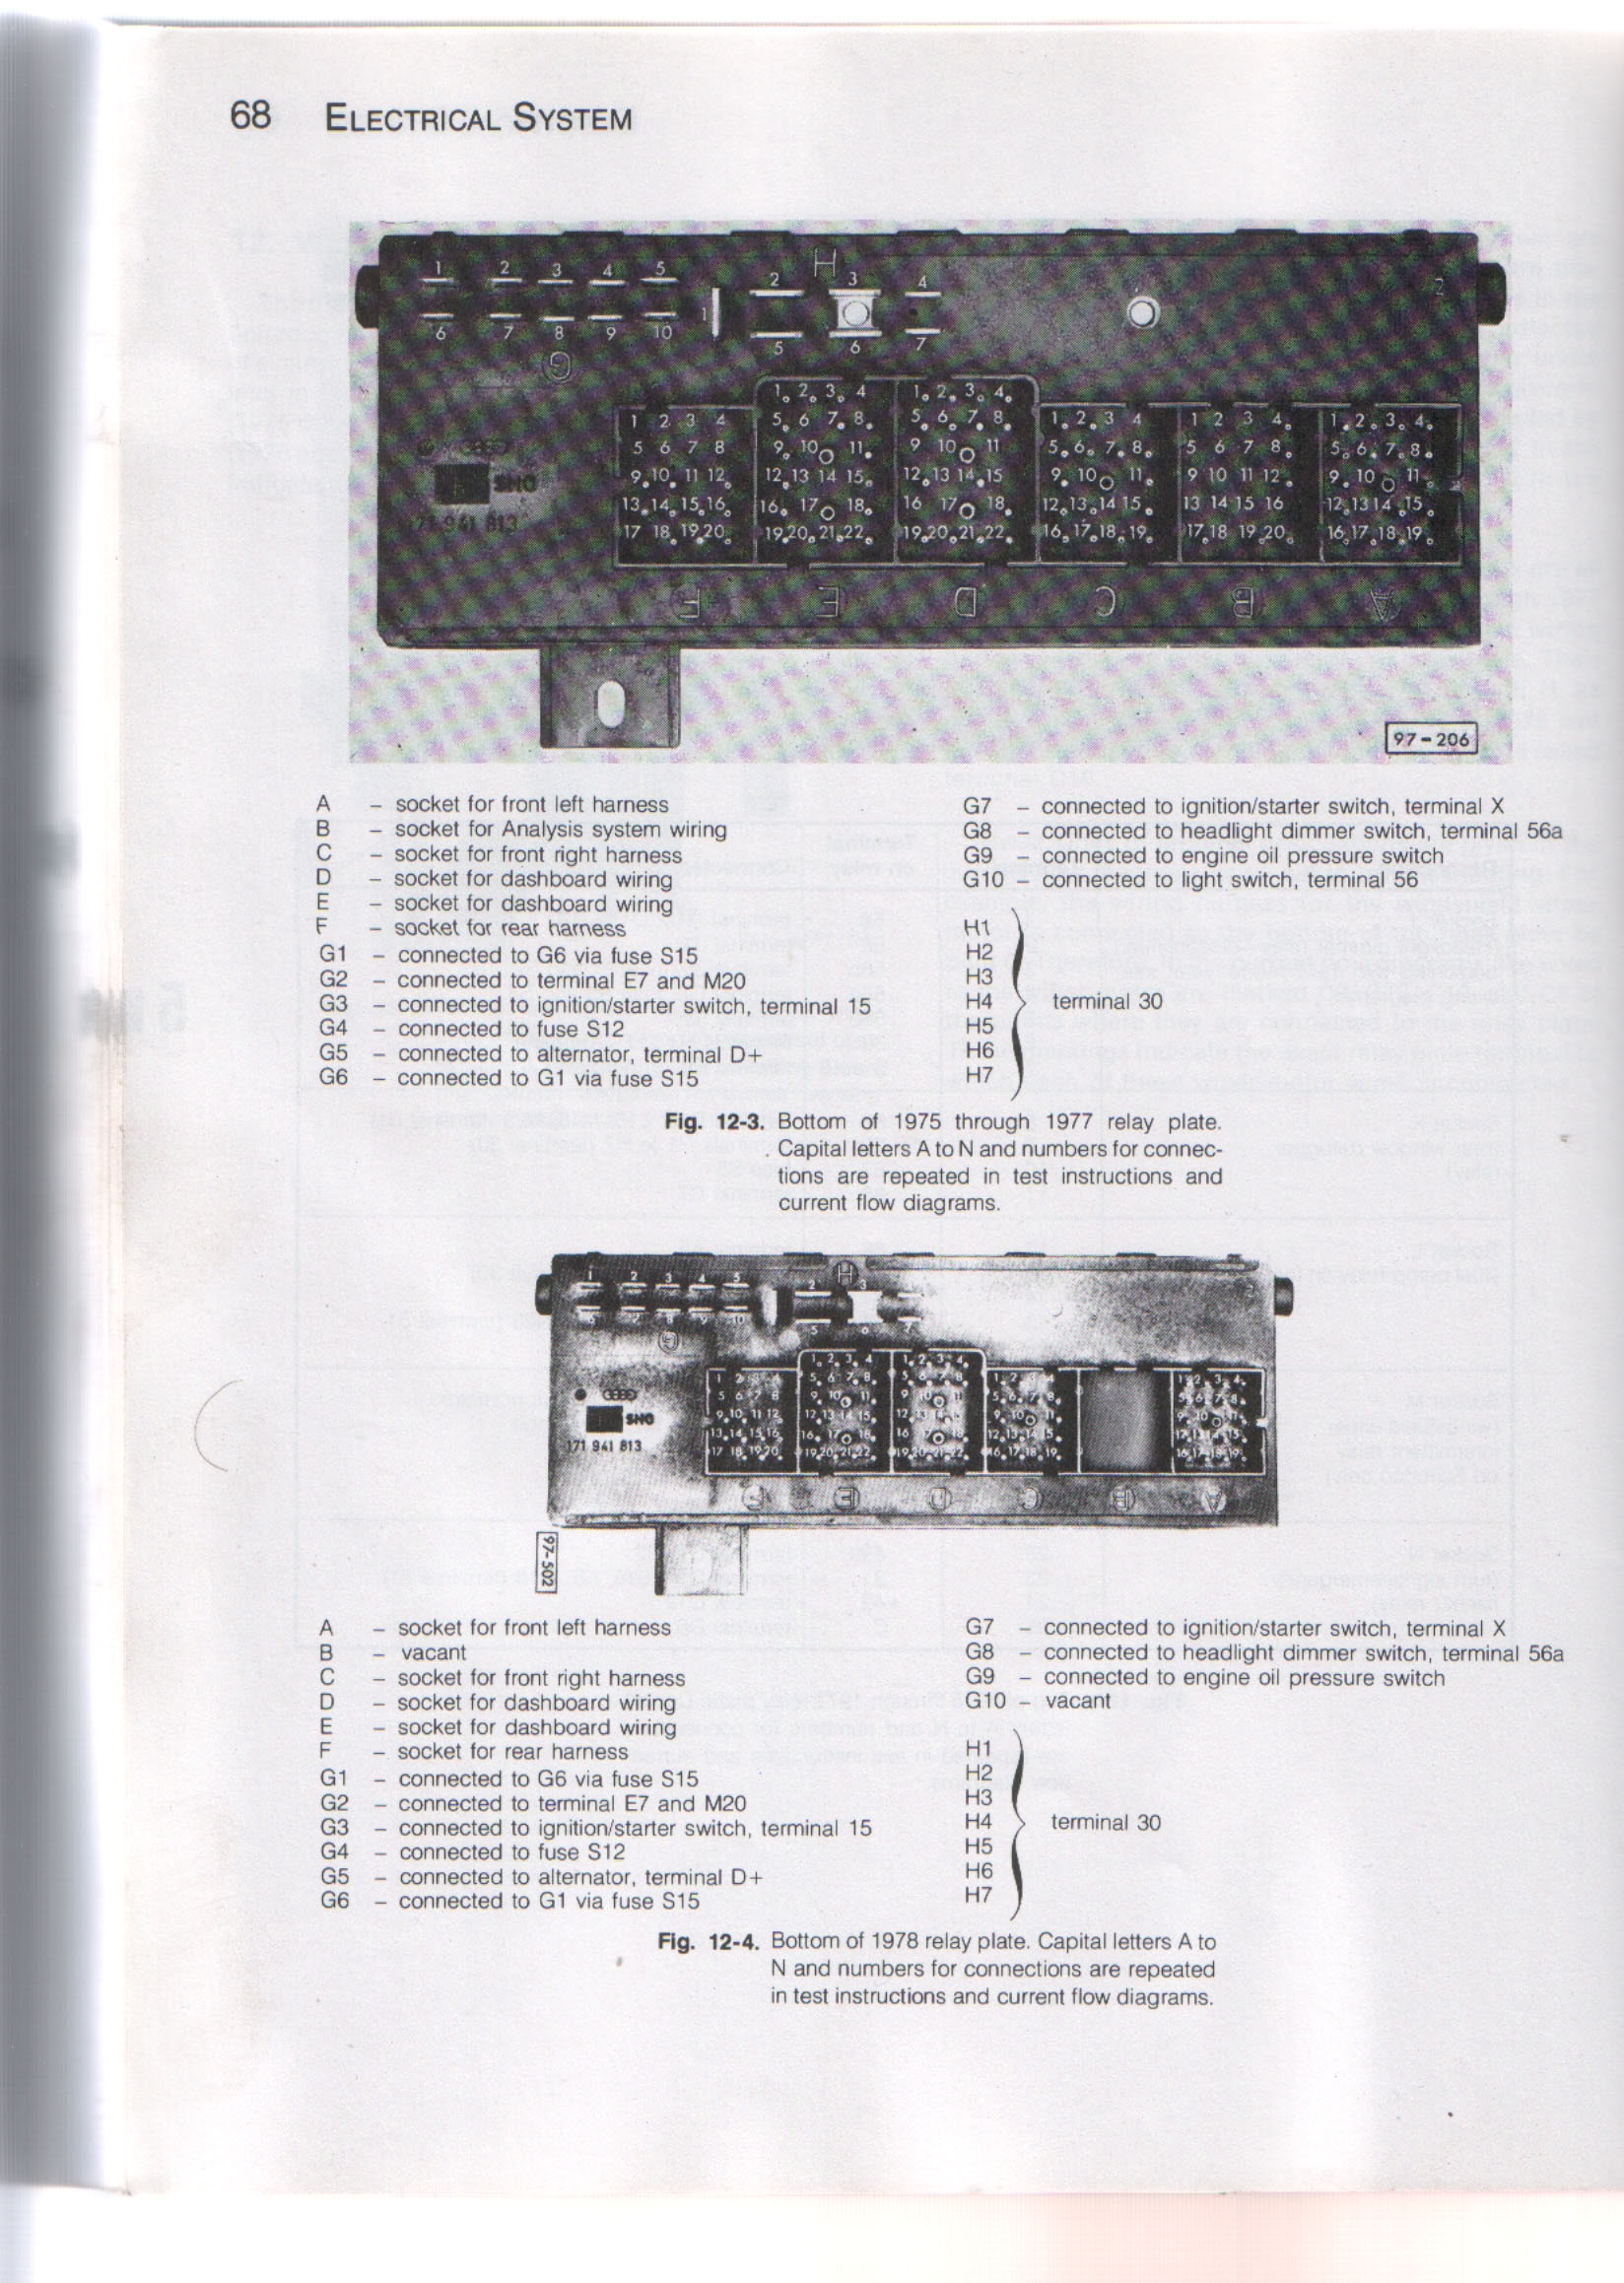 2009 vw rabbit fuse box diagram gAYbQTL 2007 vw rabbit fuse box diagram image details 1982 vw rabbit fuse box at n-0.co